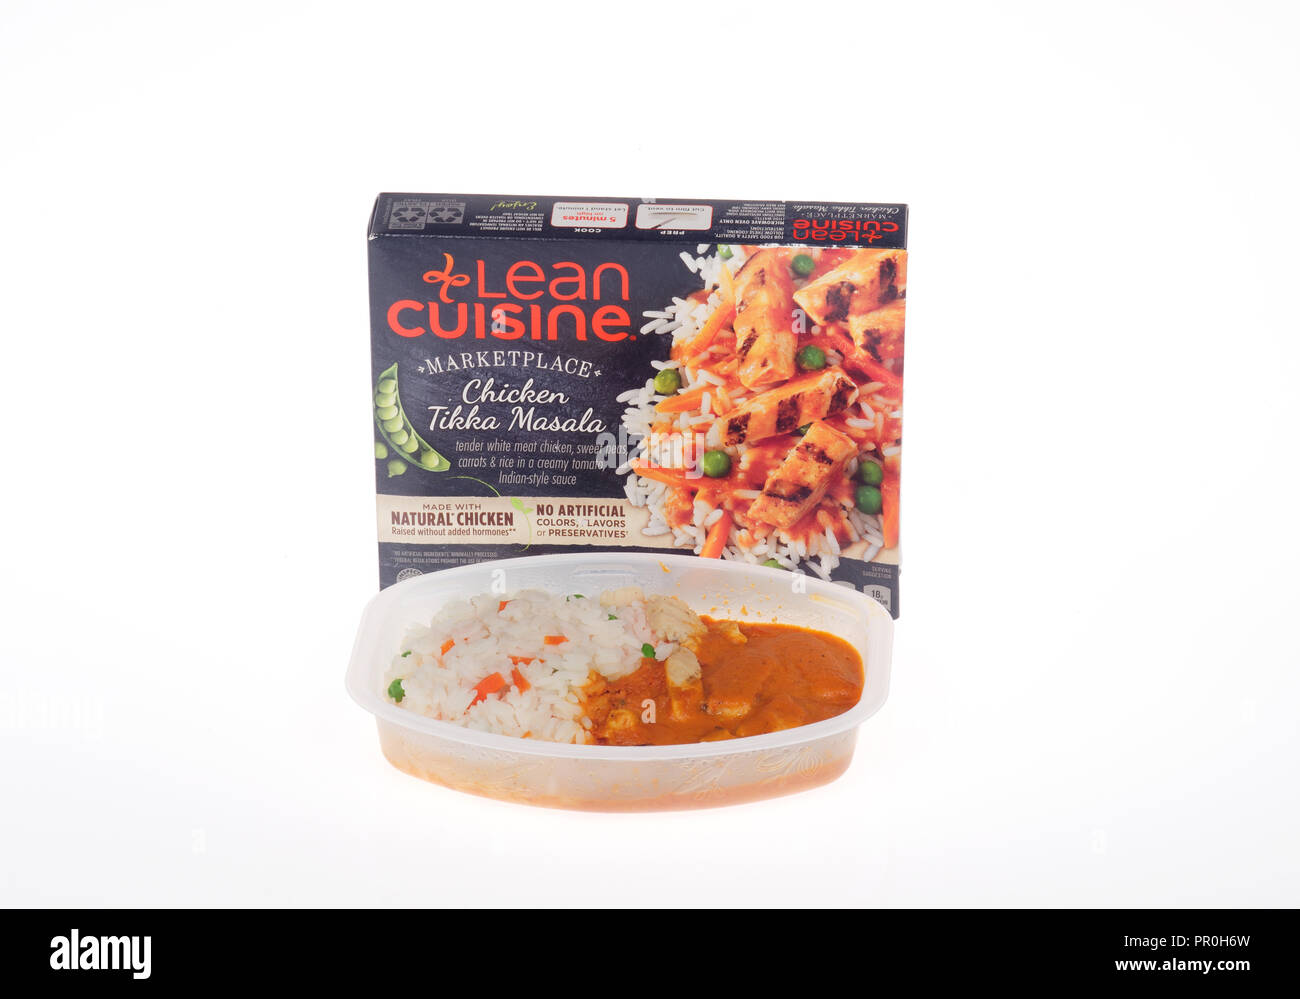 Lean Cuisine Chicken Tikka Masala ready meal with box and cooked food tray by Nestle - Stock Image